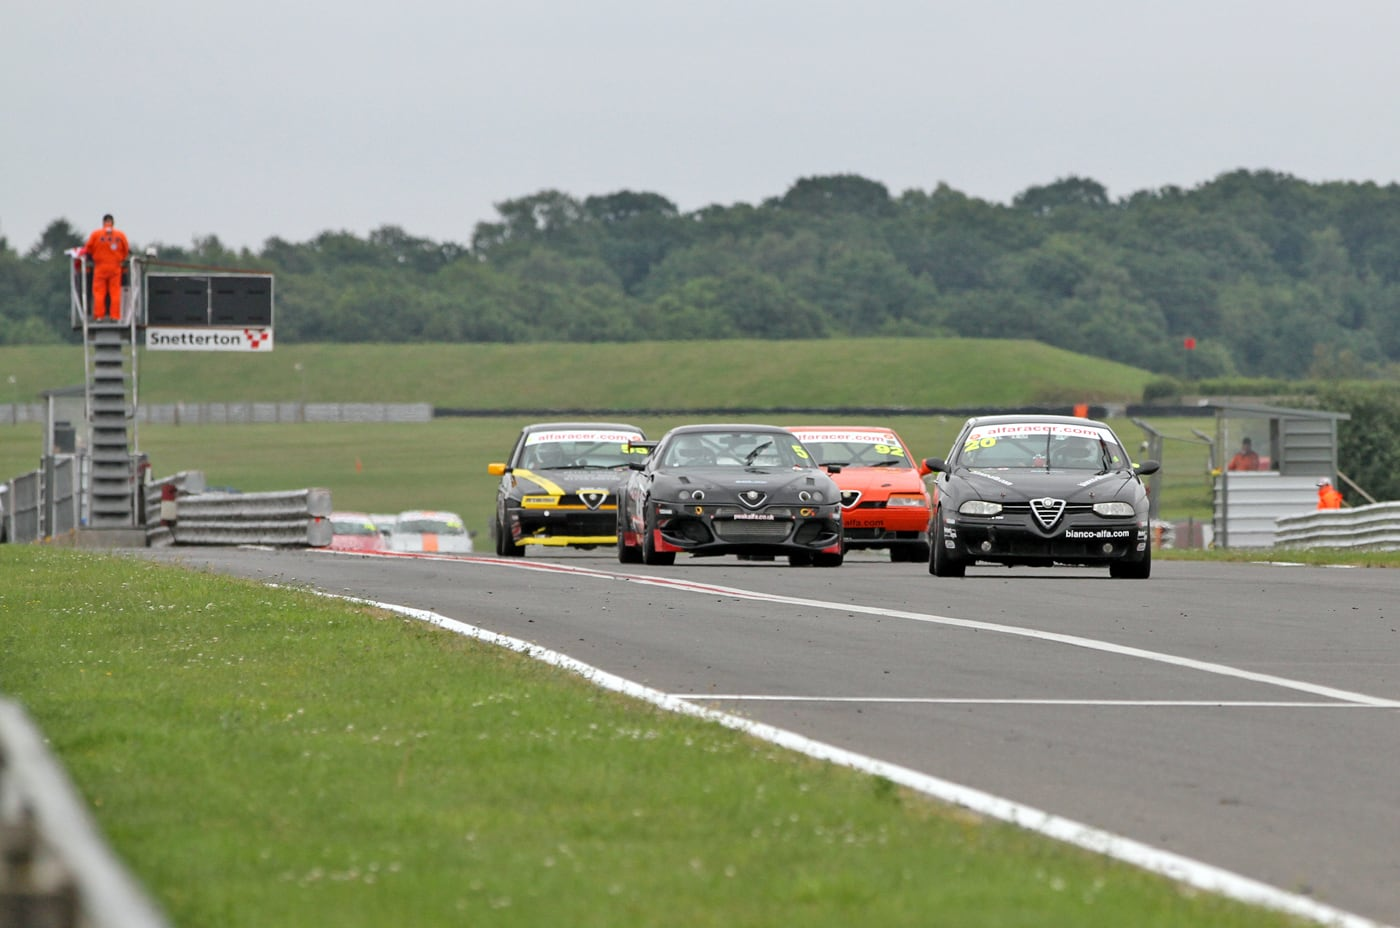 Snetterton 2018 Preview